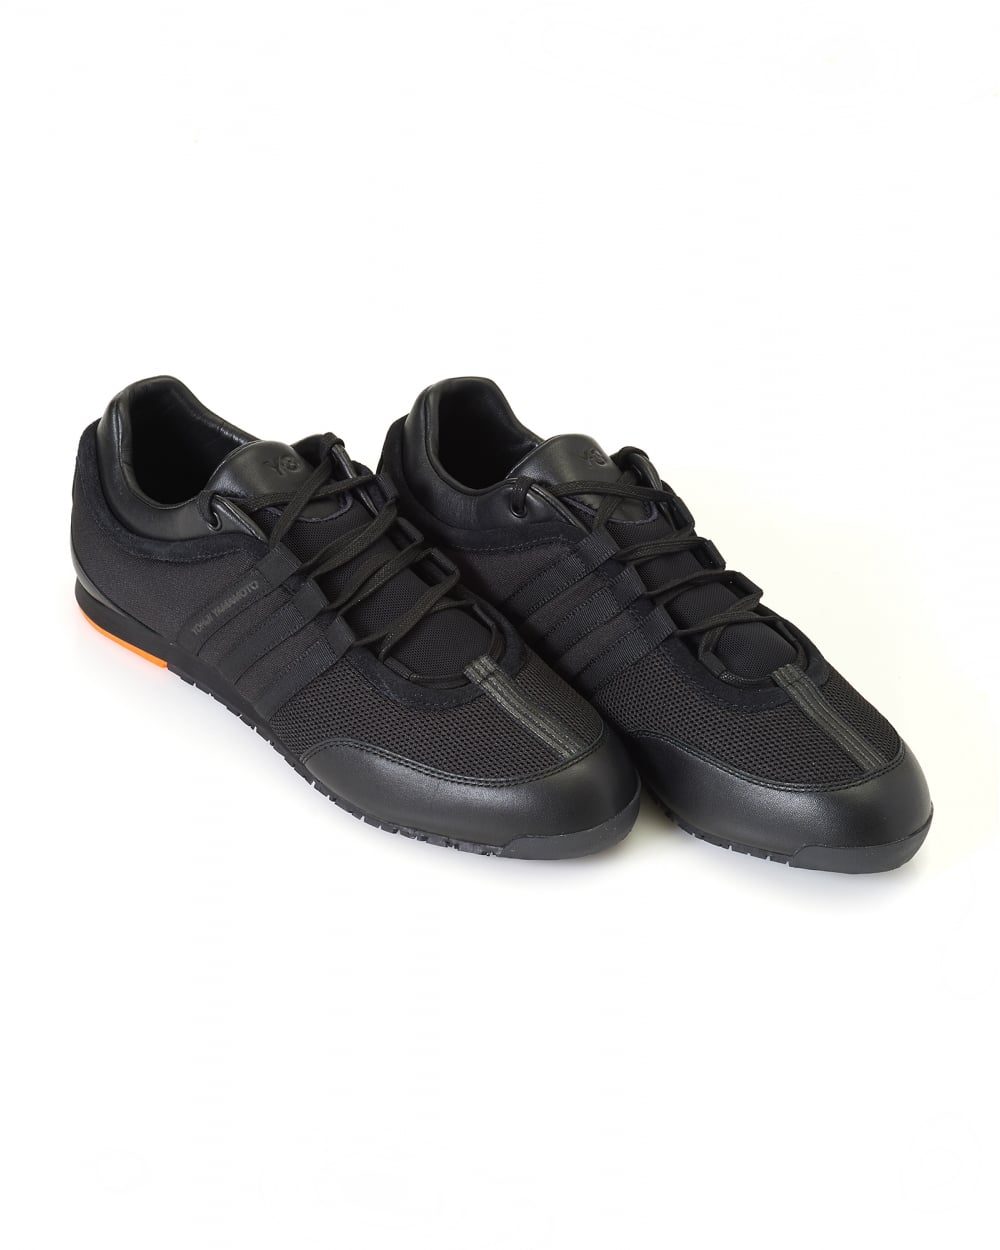 a6dd4fe2fe1 Y-3 Mens Low Top Trainers